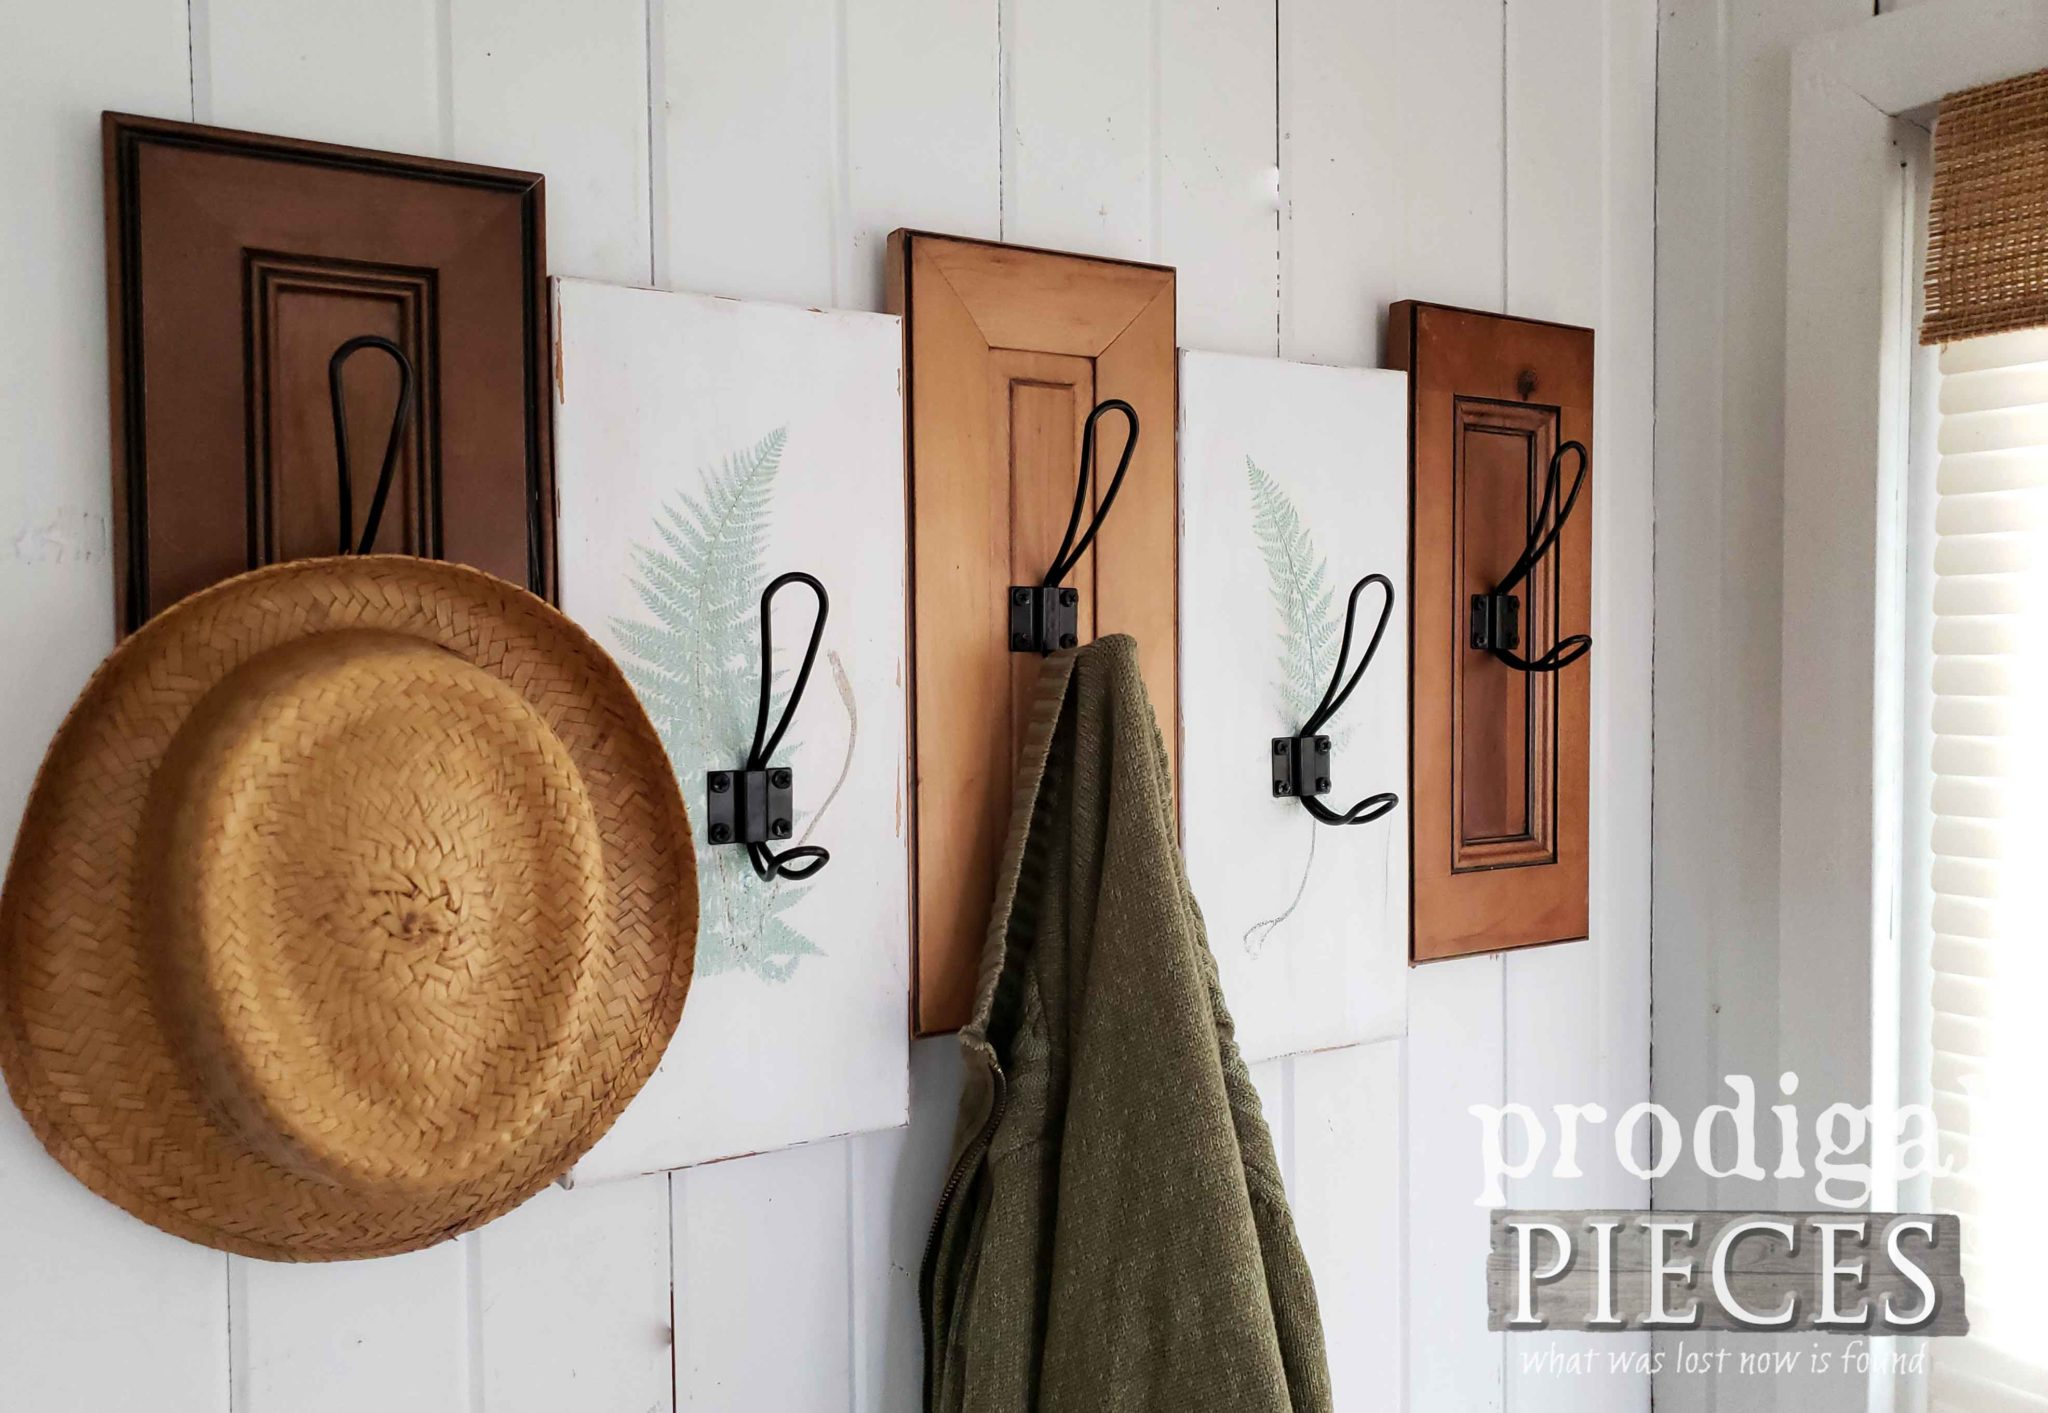 Modern Farmhouse Coat Towel Rack with Botanical Style by Larissa of Prodigal Pieces | prodigalpieces.com #prodigalpieces #diy #home #homedecor #handmade #farmhouse